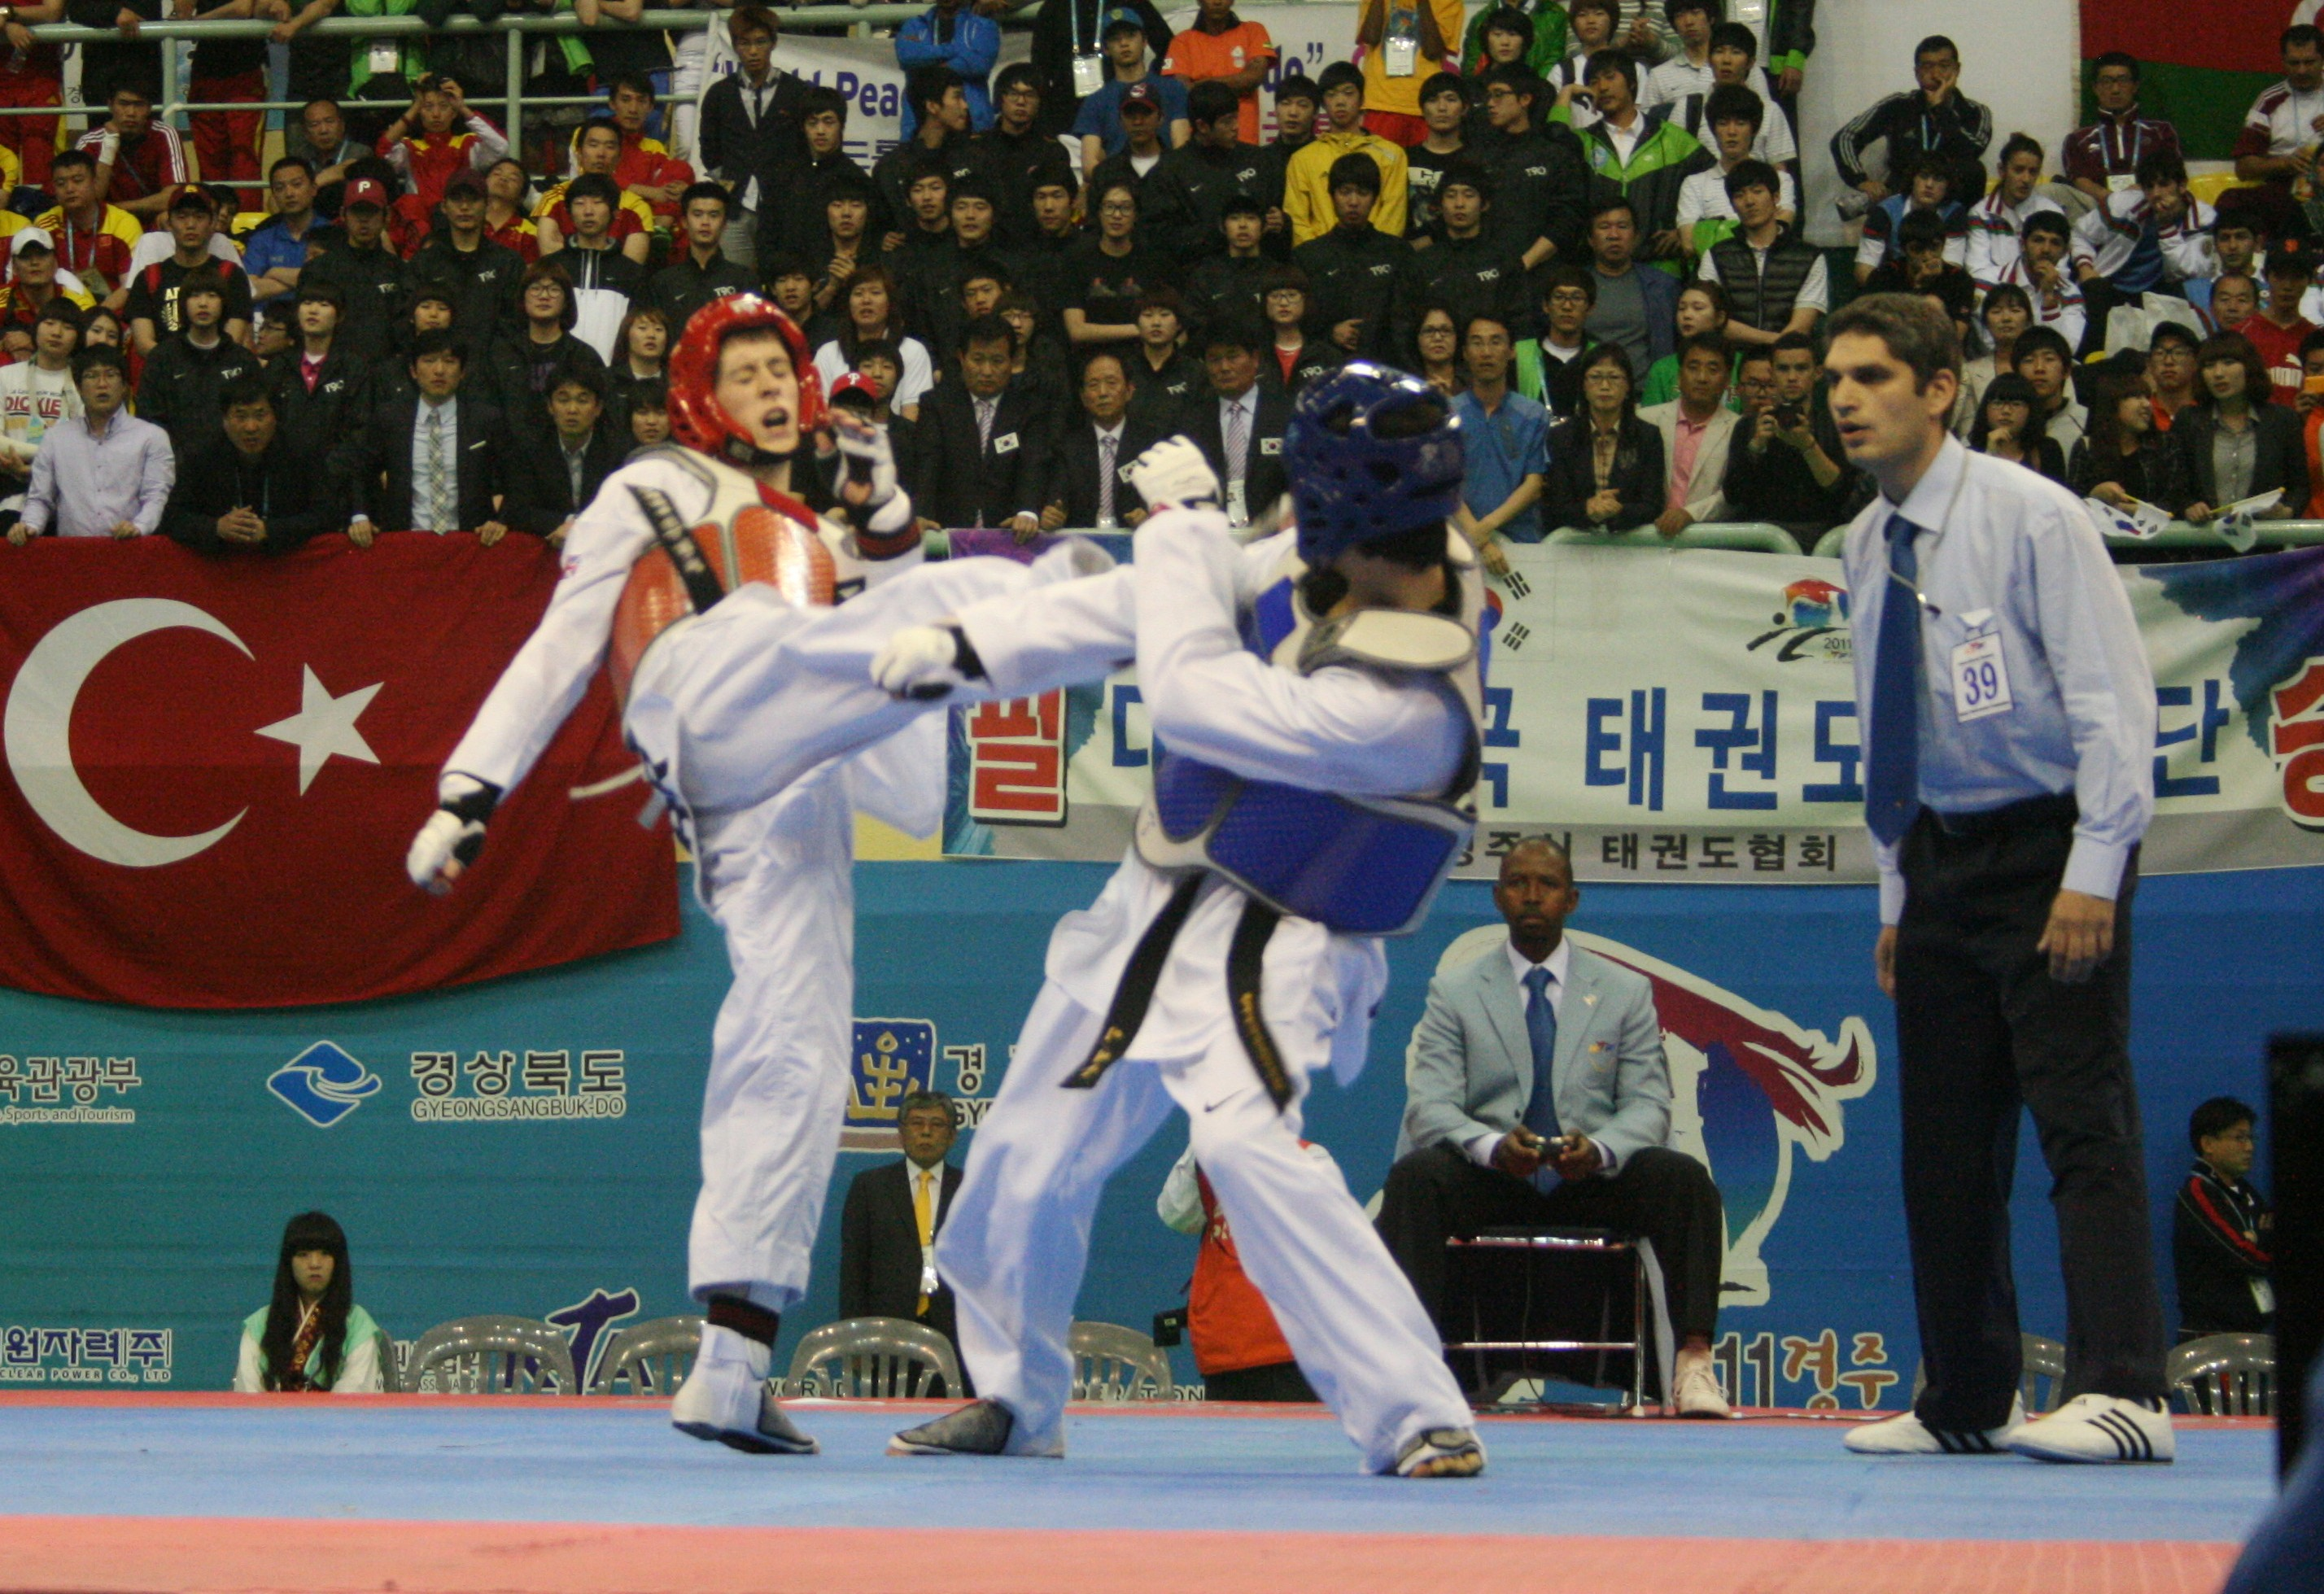 Michael v Korea 2 World Final